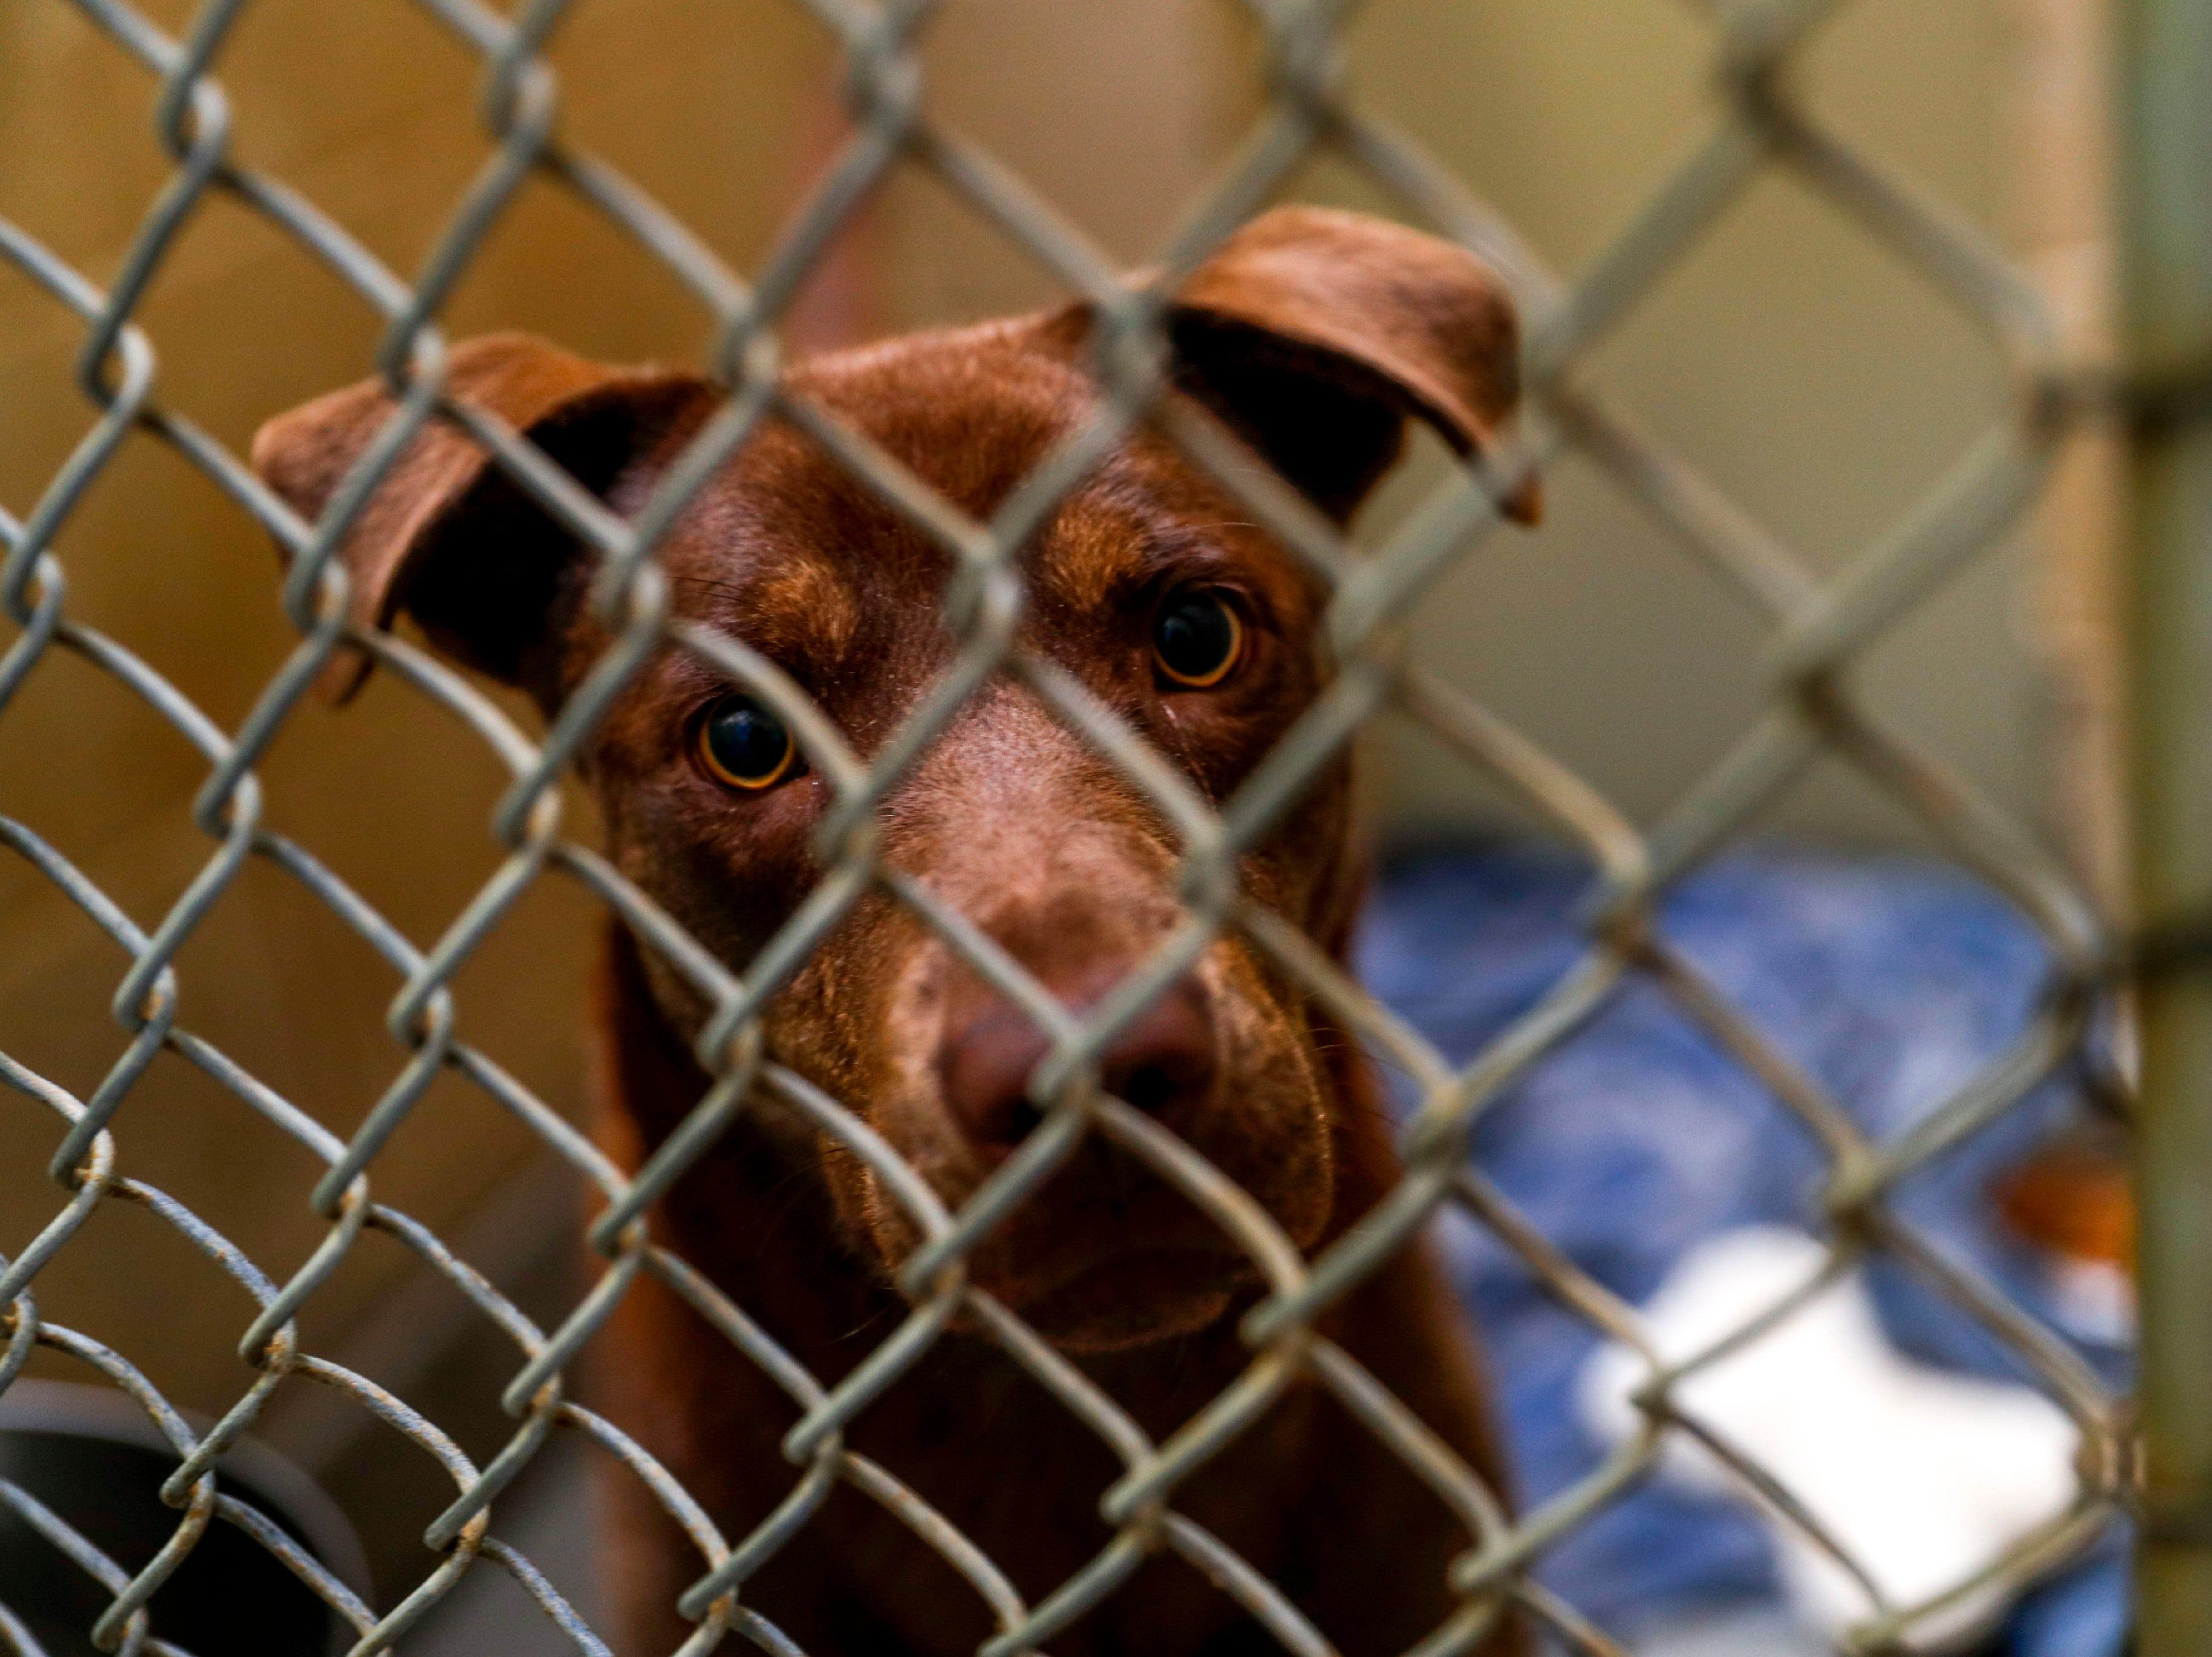 Princess, a Labrador retriever, awaits an owner to take her home at Montgomery County Animal Care and Control in Clarksville, Tenn., on Wednesday, March 13, 2019.